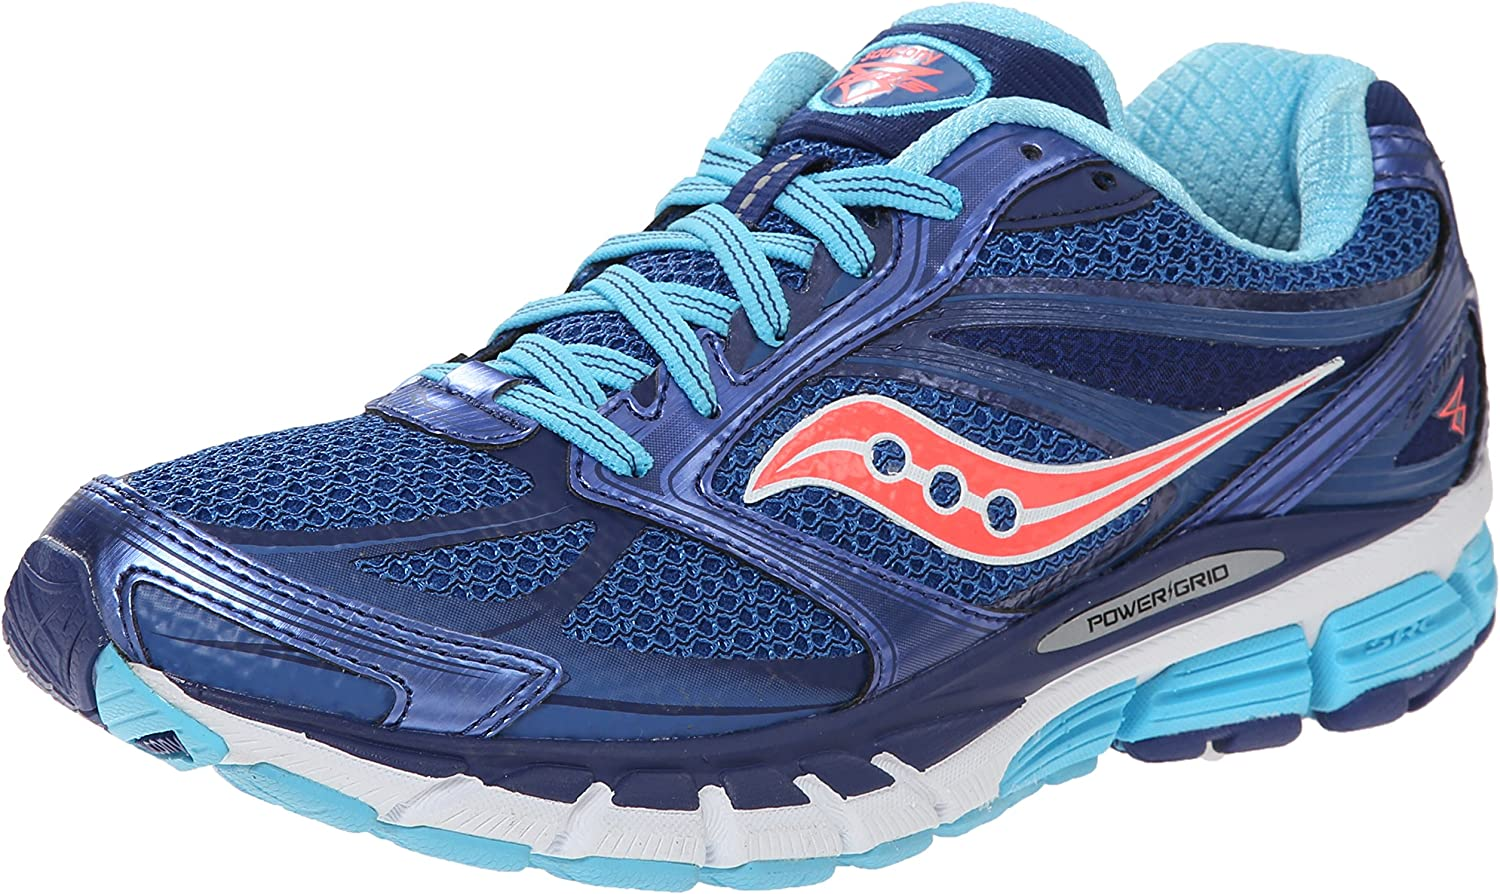 Saucony Women's Guide 8 Road Running shoes